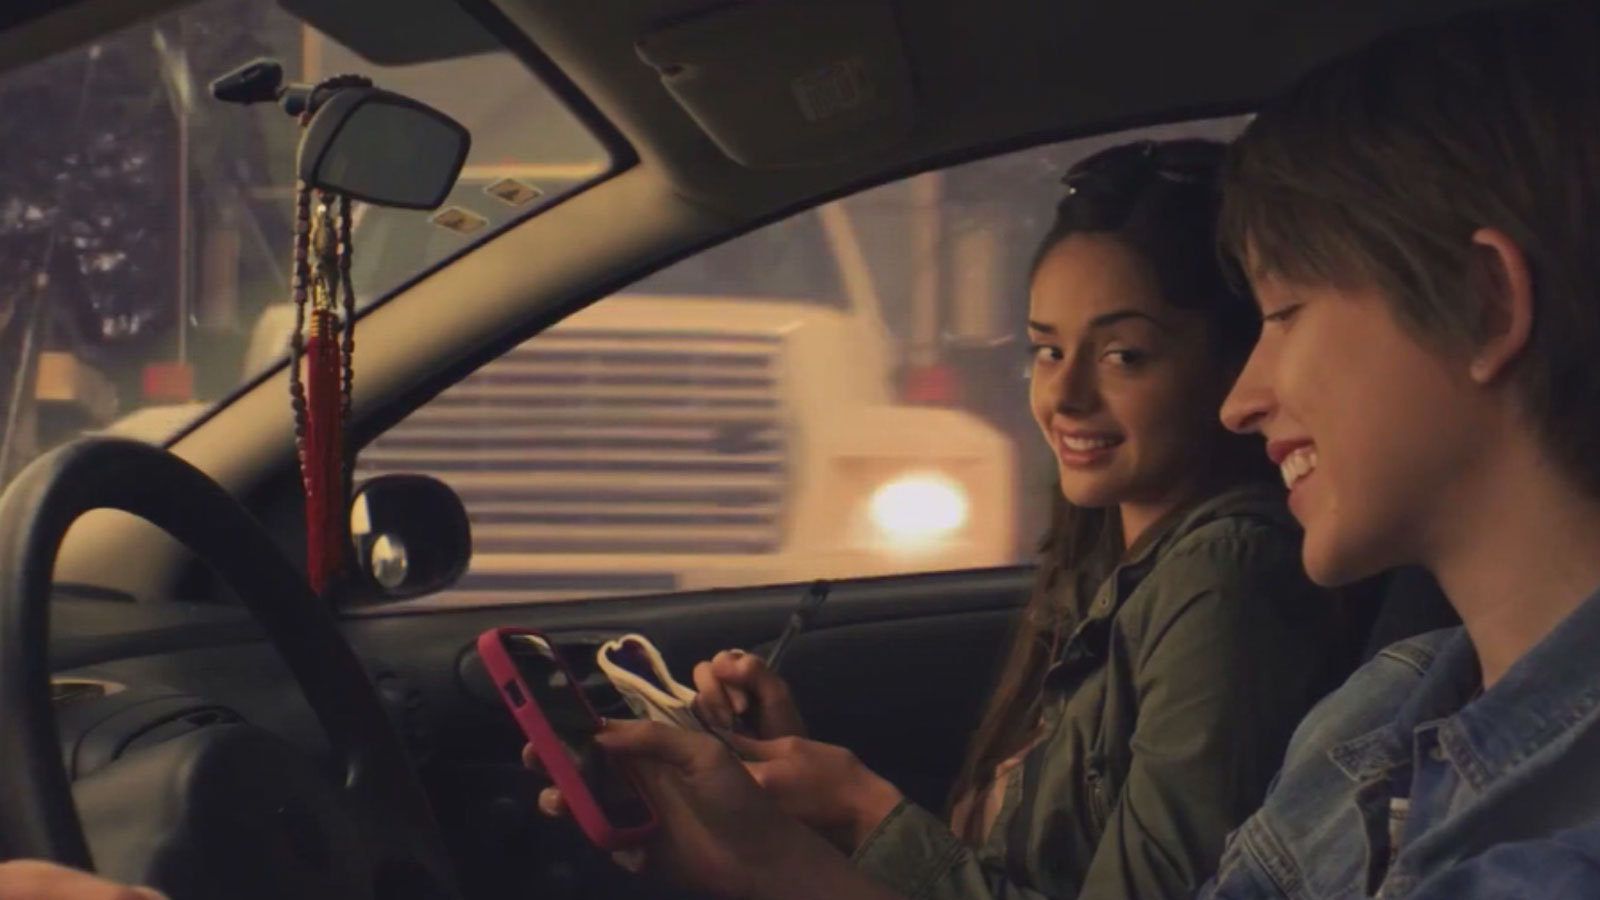 A national TV ad campaign aimed at preventing texting and driving (credit: CBS)